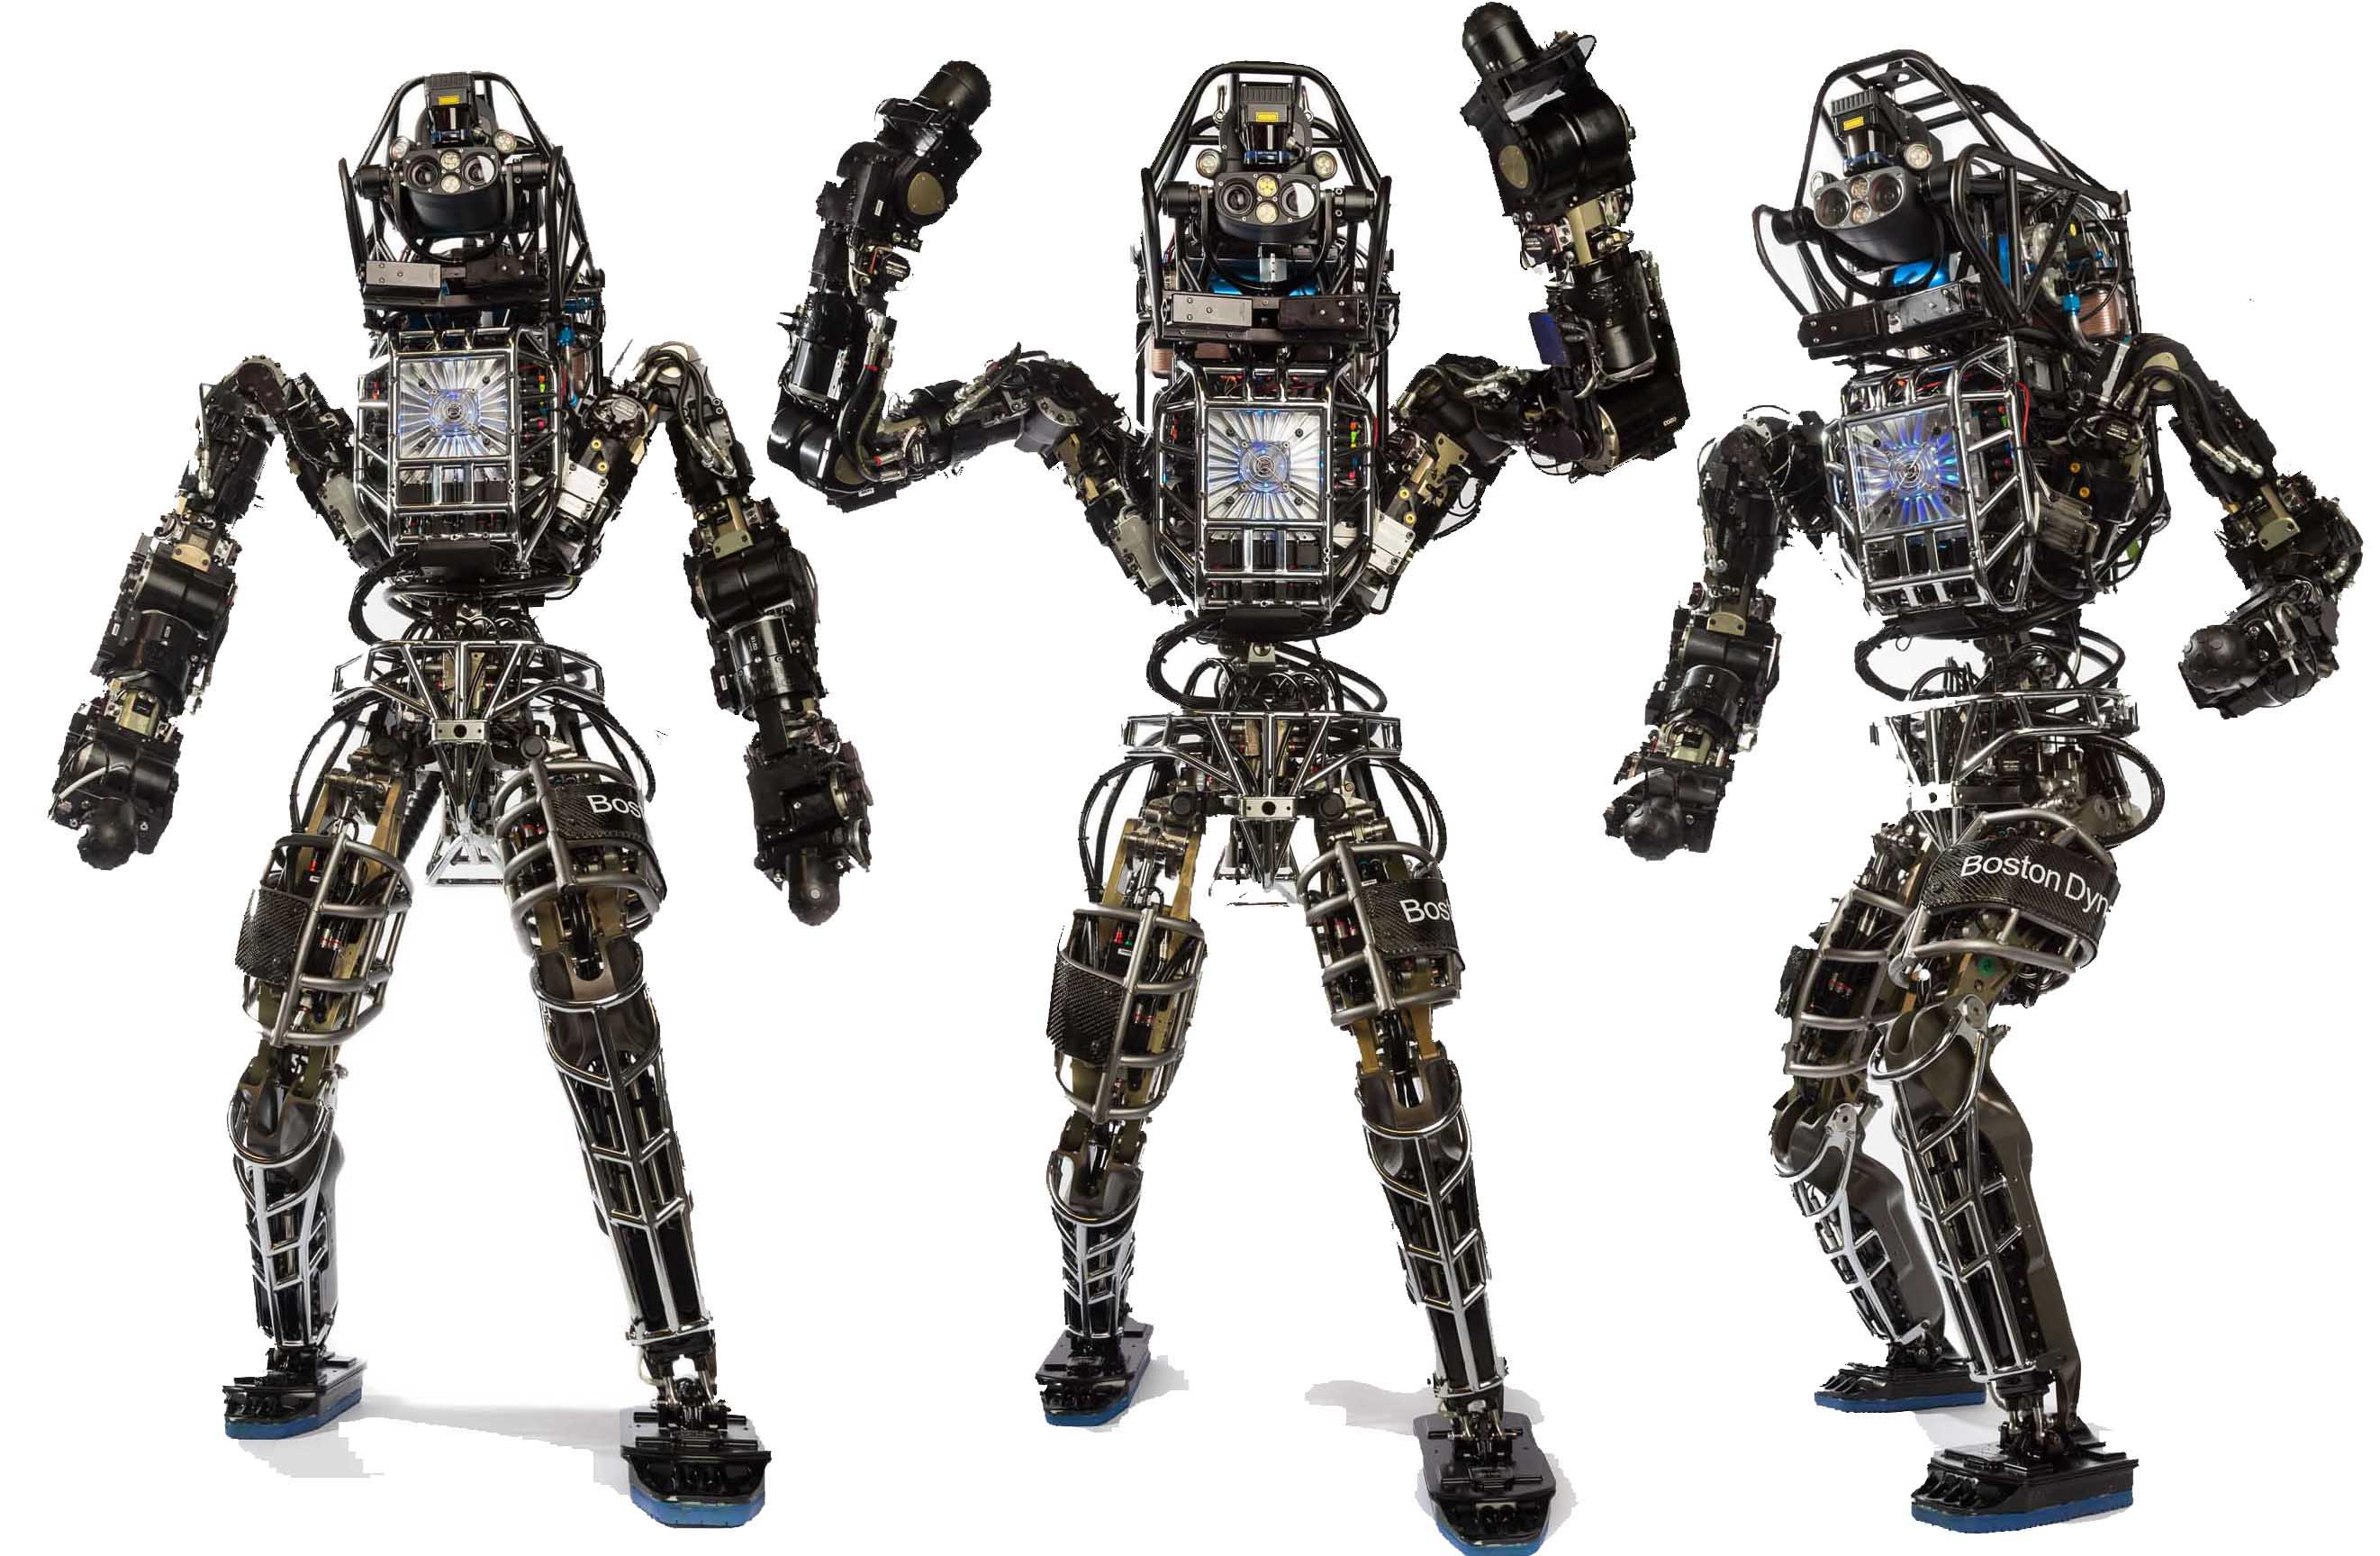 Image Taken from Boston Dynamics Official Website.